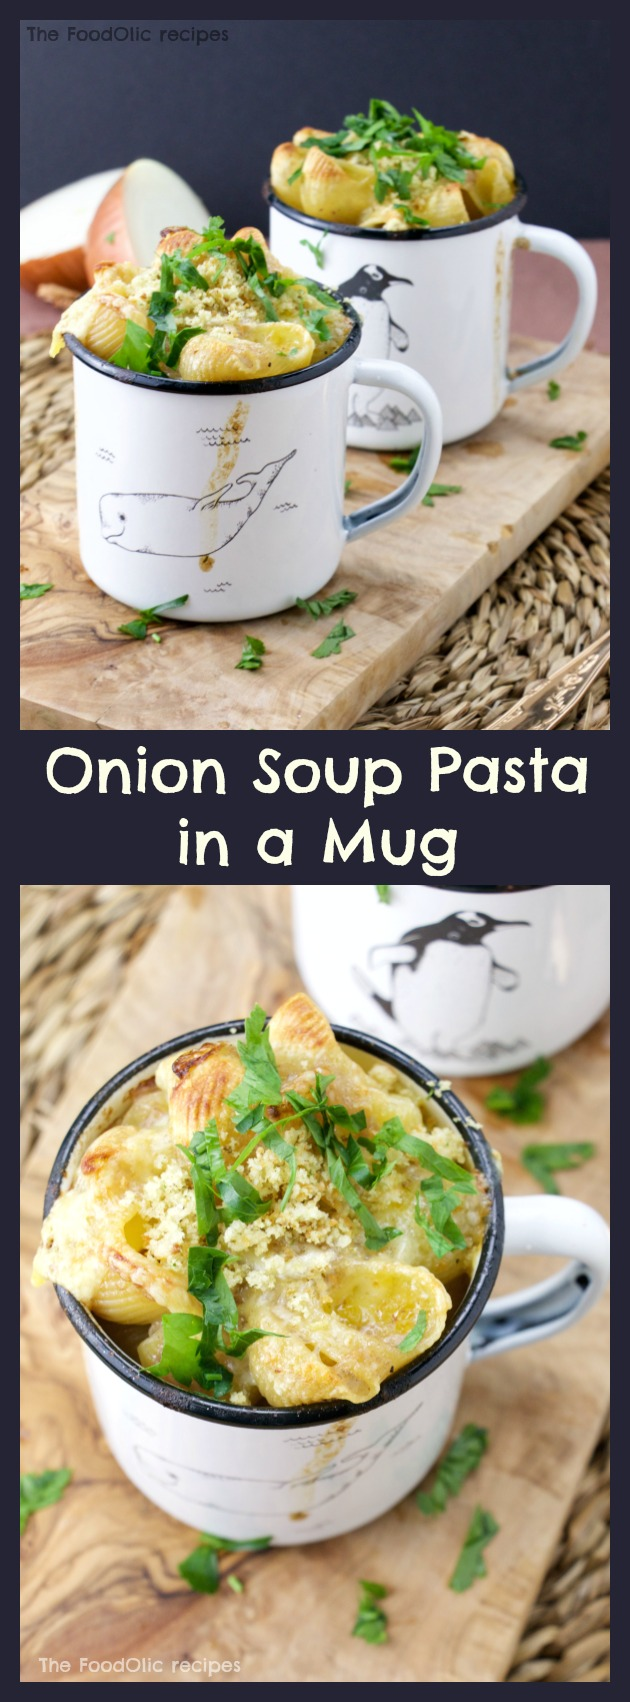 A shell pasta with an extra tasty onion soup (sauce) served in a mug topped with a light gratiné, fresh parsley and crunchy bread crumbs.